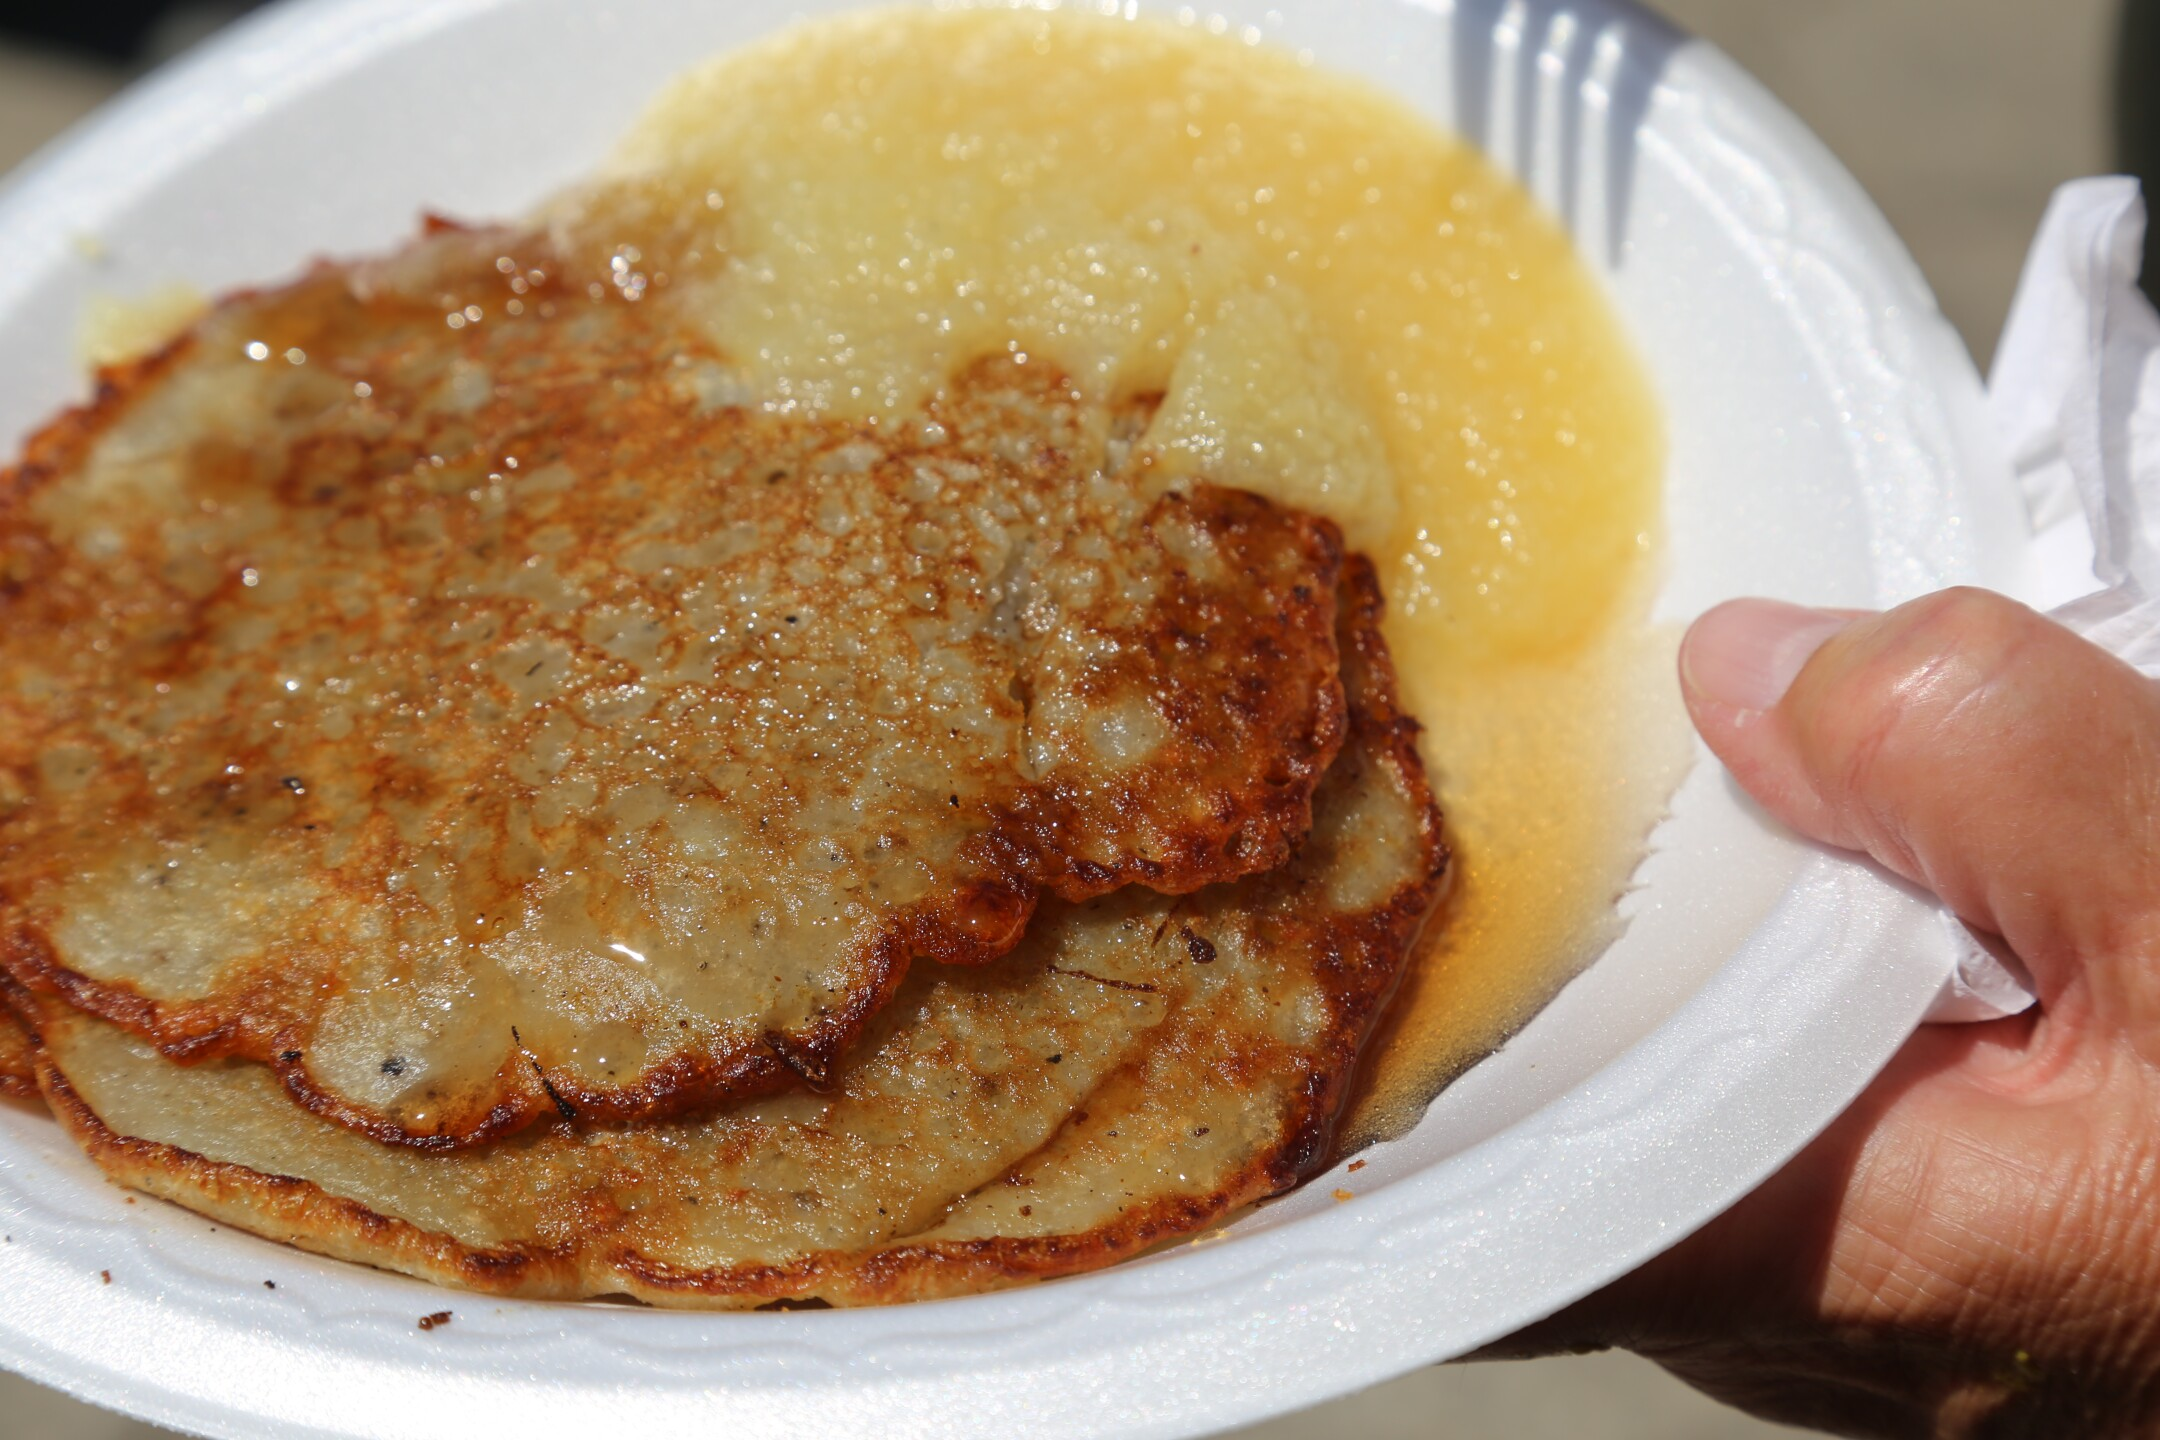 Potato Pancake and Apple sauce